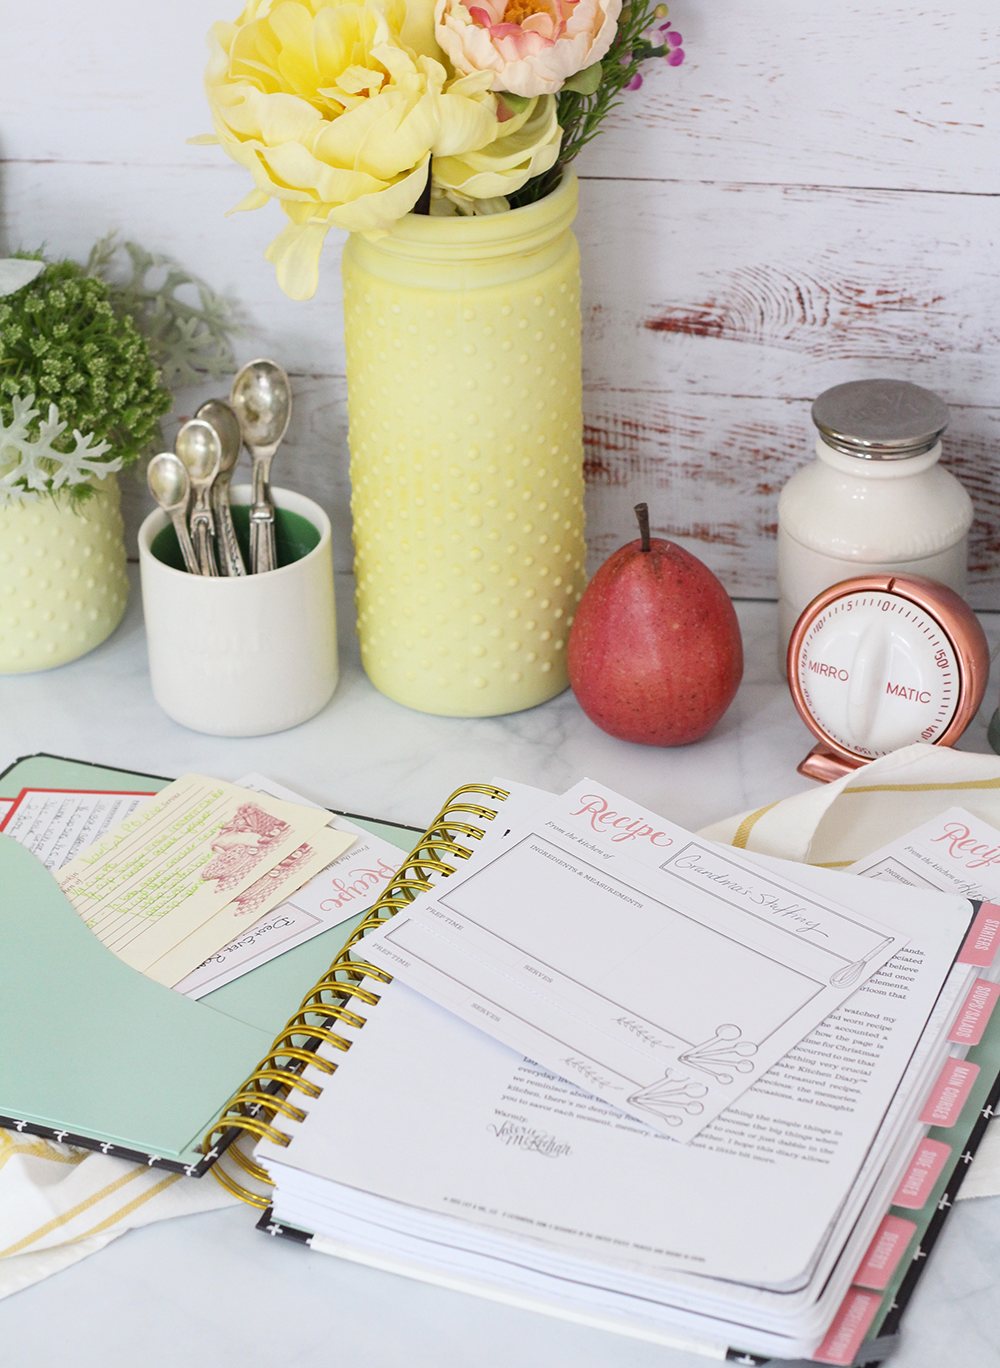 The Keepsake Kitchen Diary is a recipe journal combined with a recipe keeper for recording precious family recipes